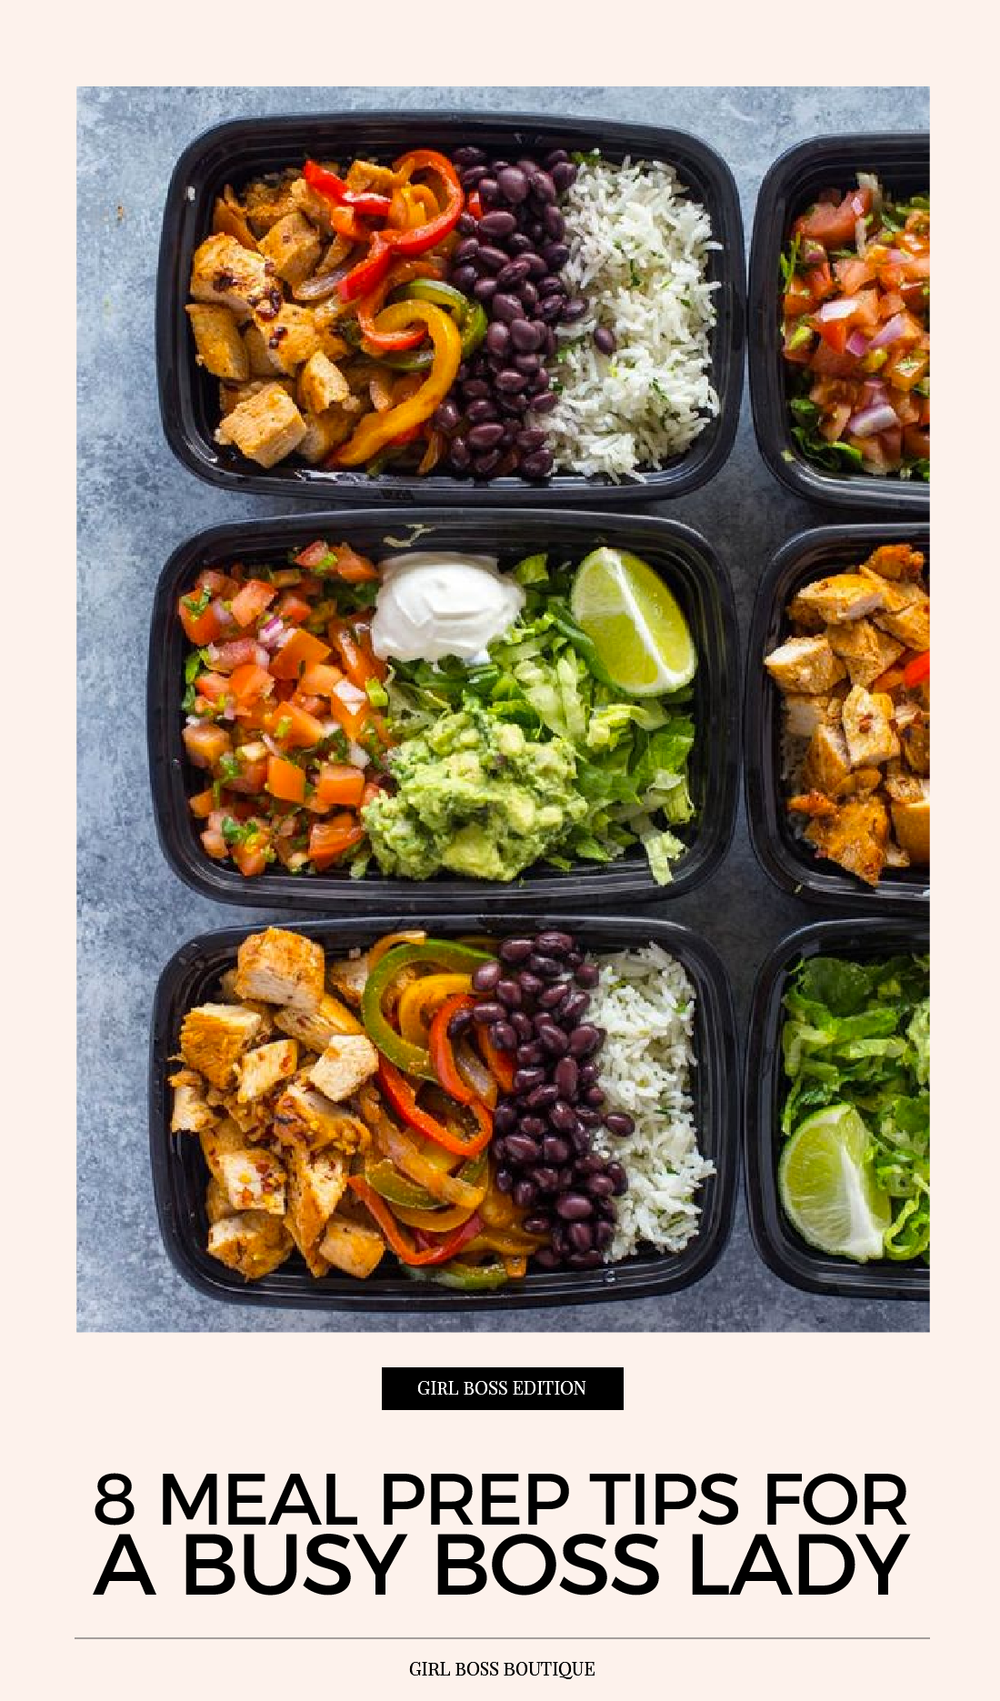 8 Meal Prep Tips for a Busy Boss Lady